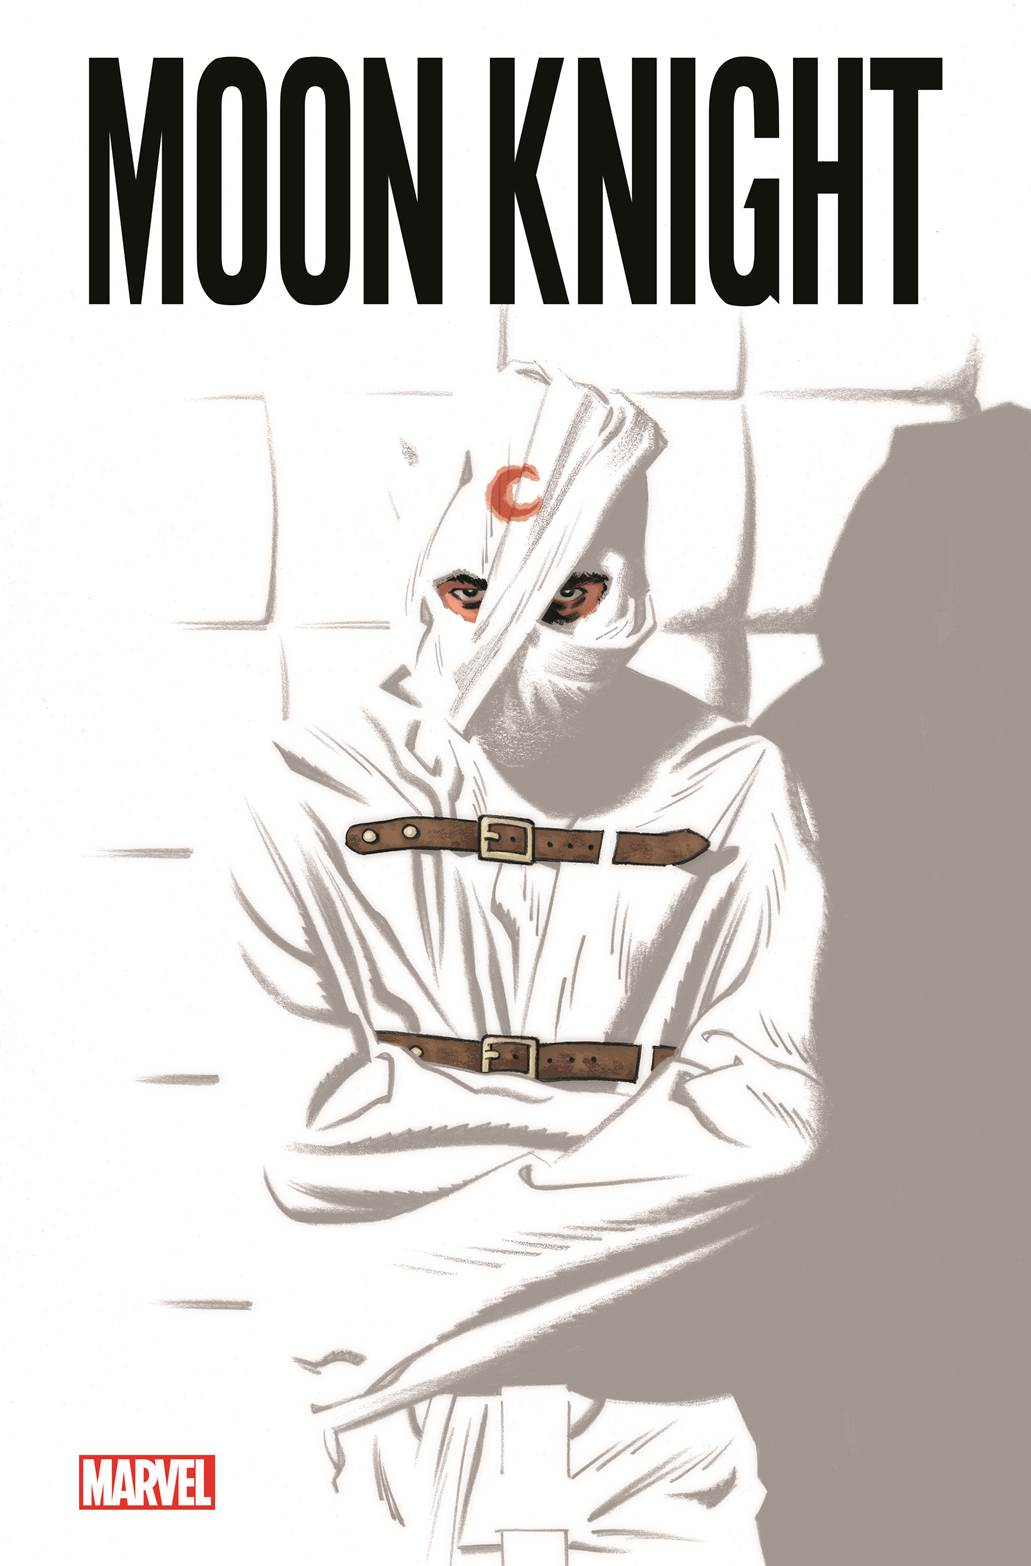 MOON KNIGHT #1 Comes to All-New, All-Different Marvel in 2016!